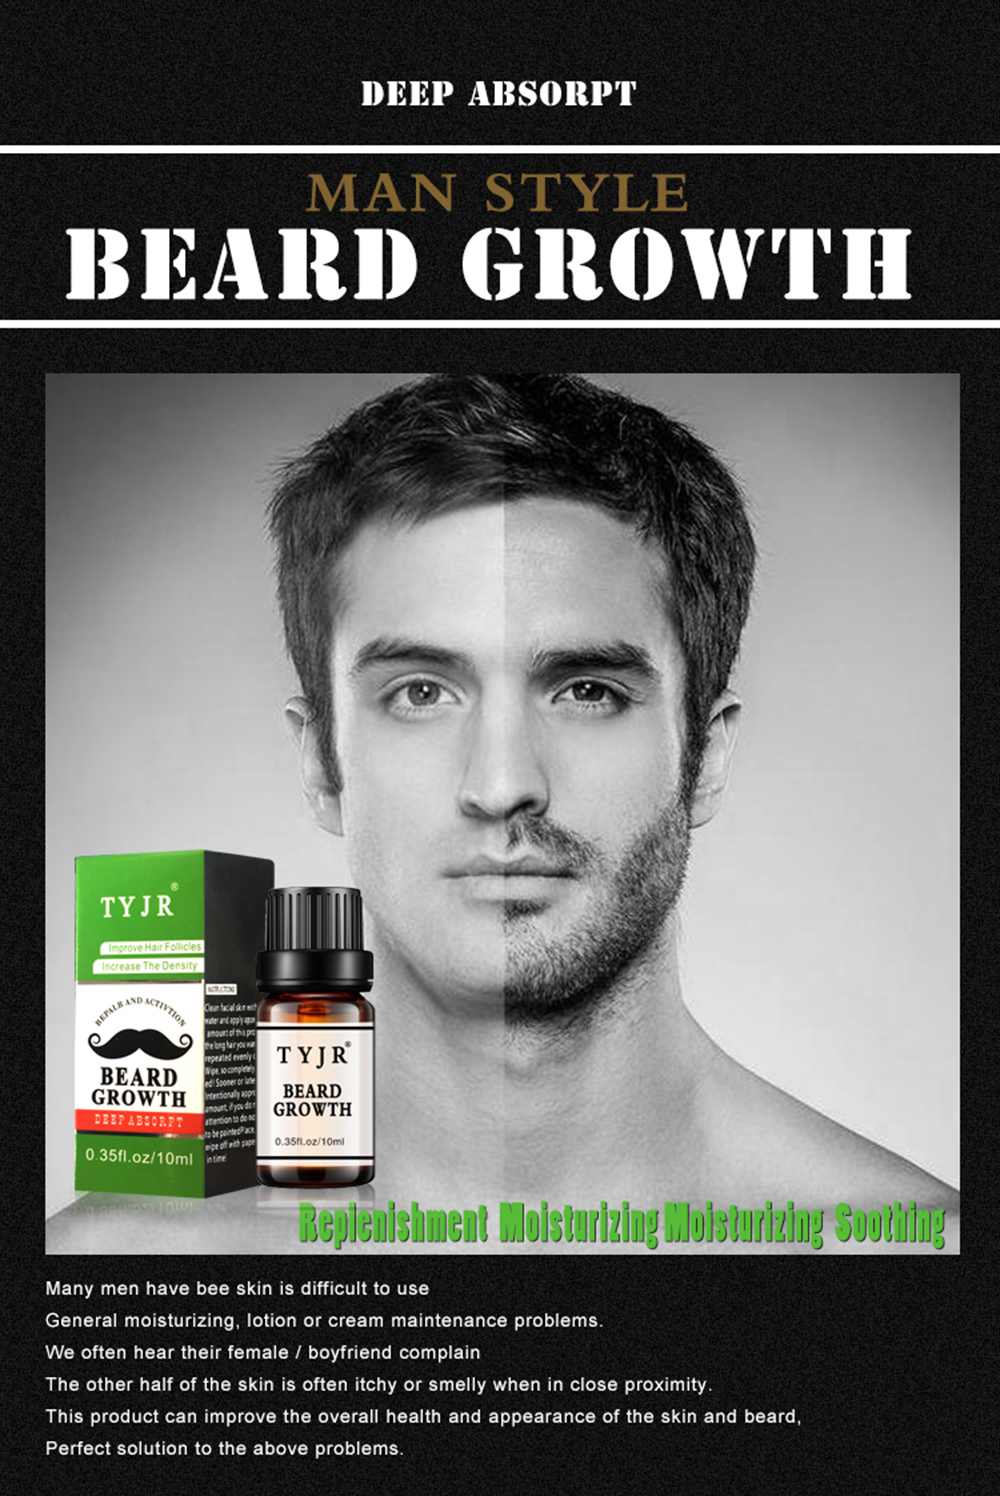 New Beard Growth Oil Essential Oil Nourishing Liquid Natural Hair Oil Durable Whiskers Beard Conditioner Hair Care Modeling Kit